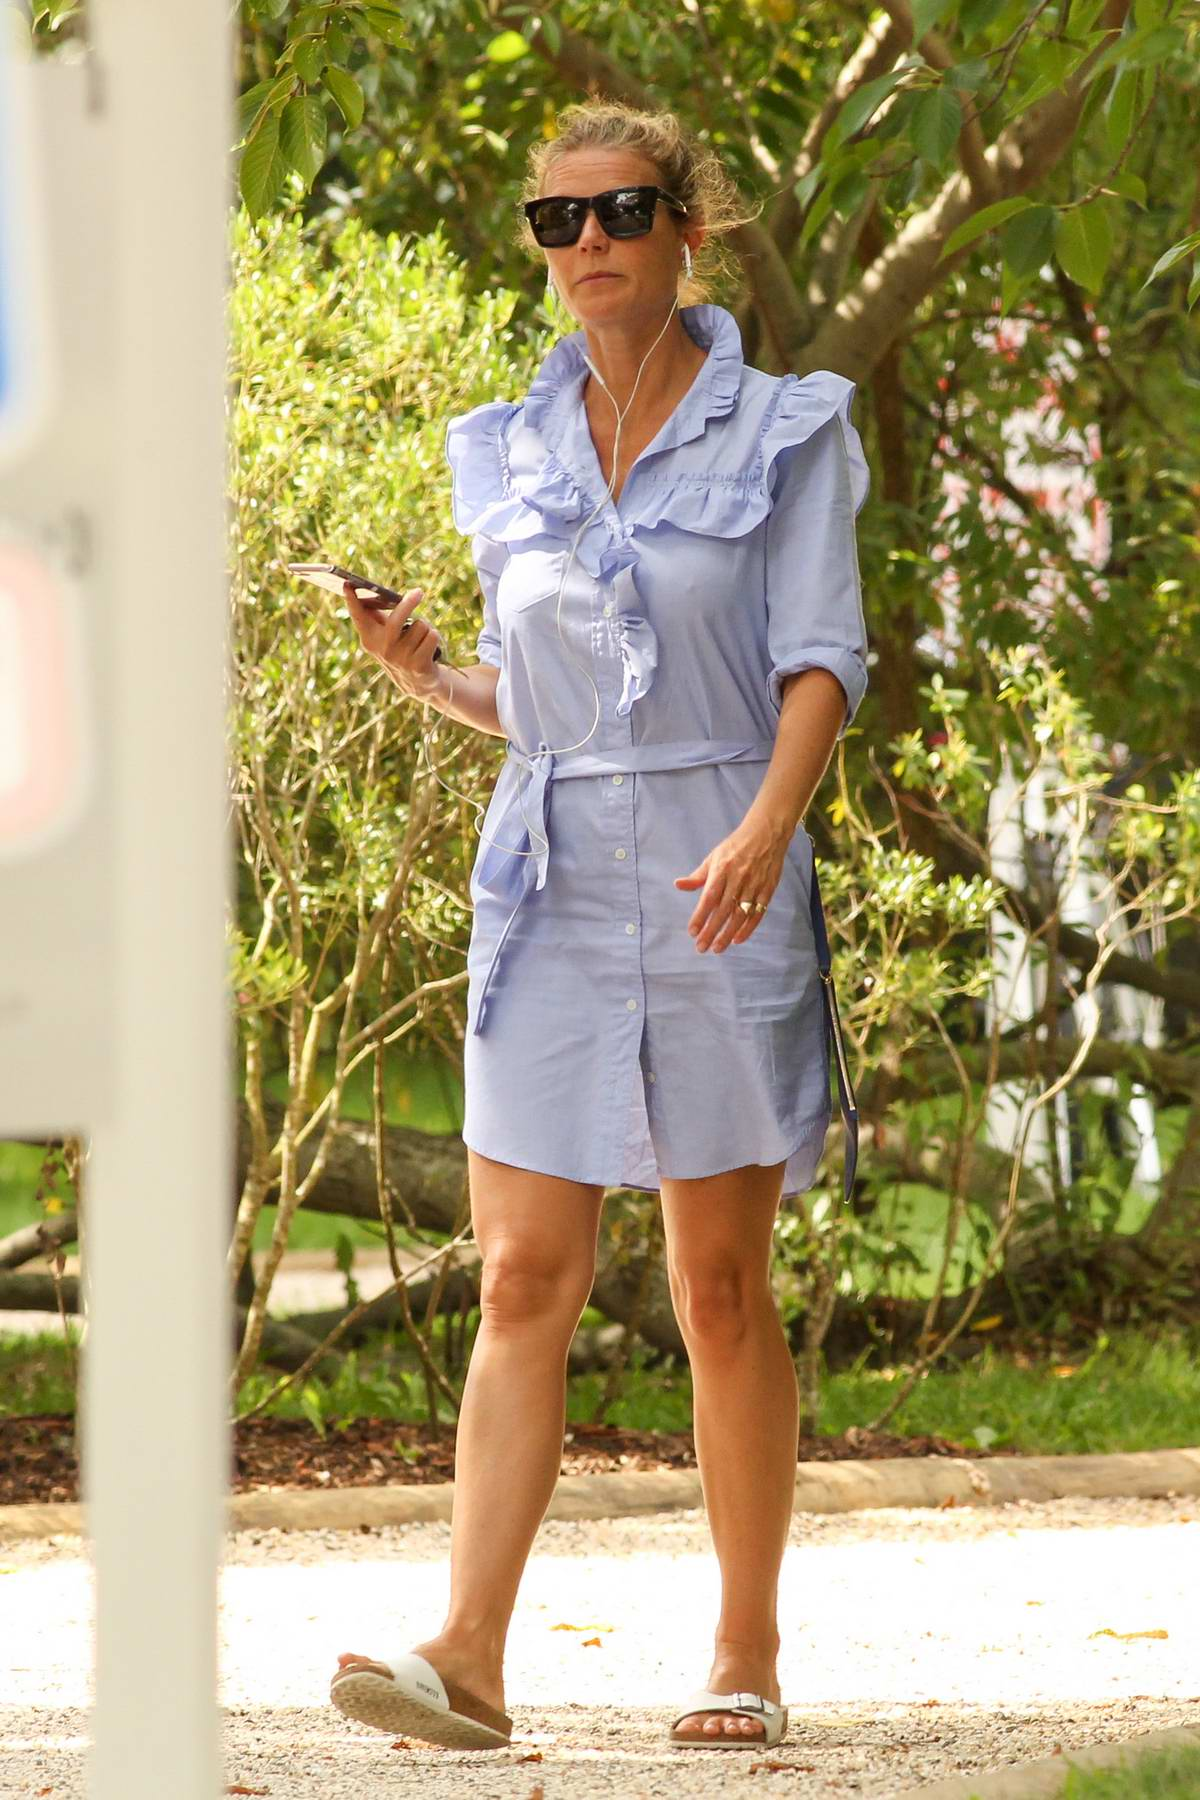 Gwyneth Paltrow wears a Ruffled Shirt dress while out in the Hamptons